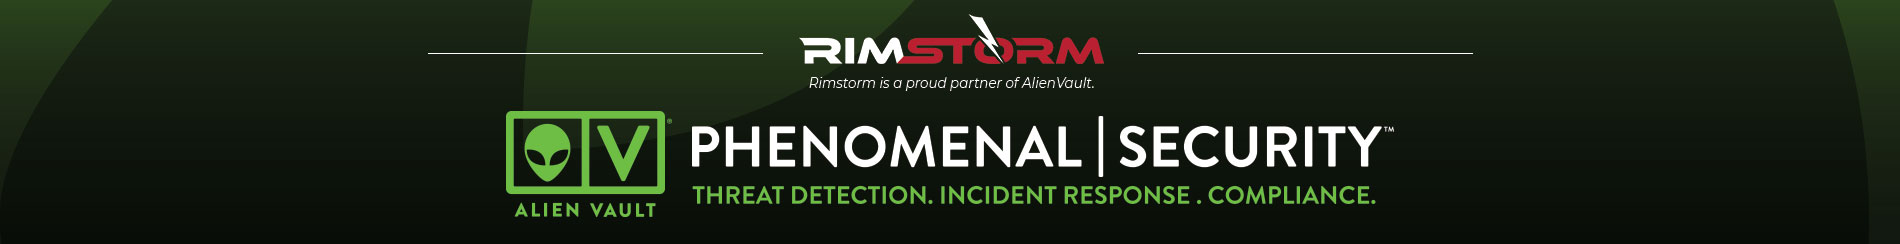 alienvault banner x sm 2 - Endpoint Security